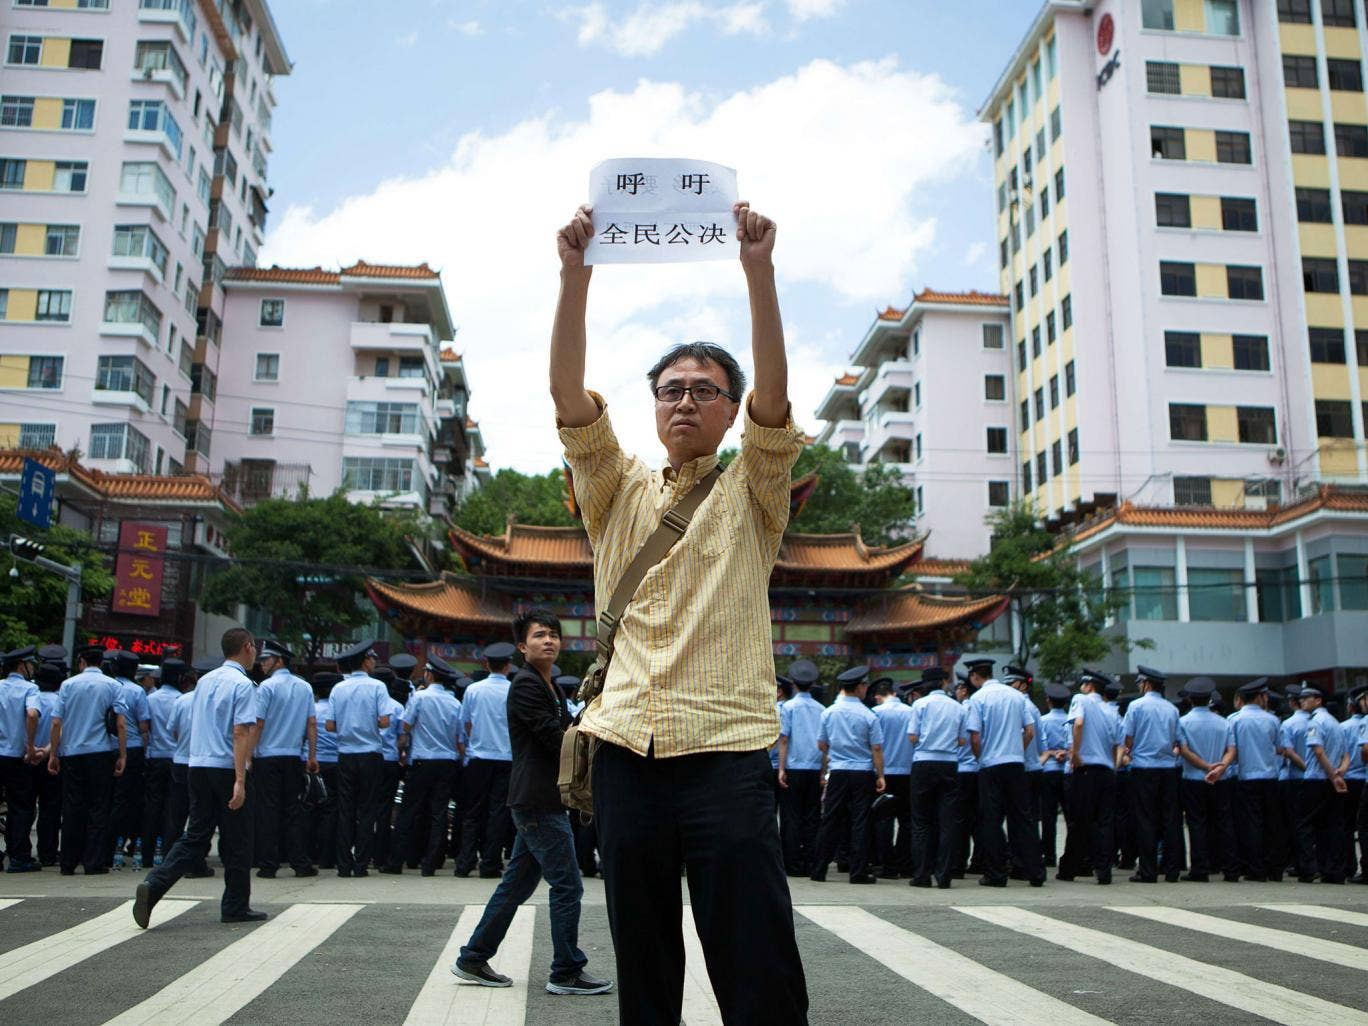 A demonstrator stands firm outside a government building in China's Yunnan province